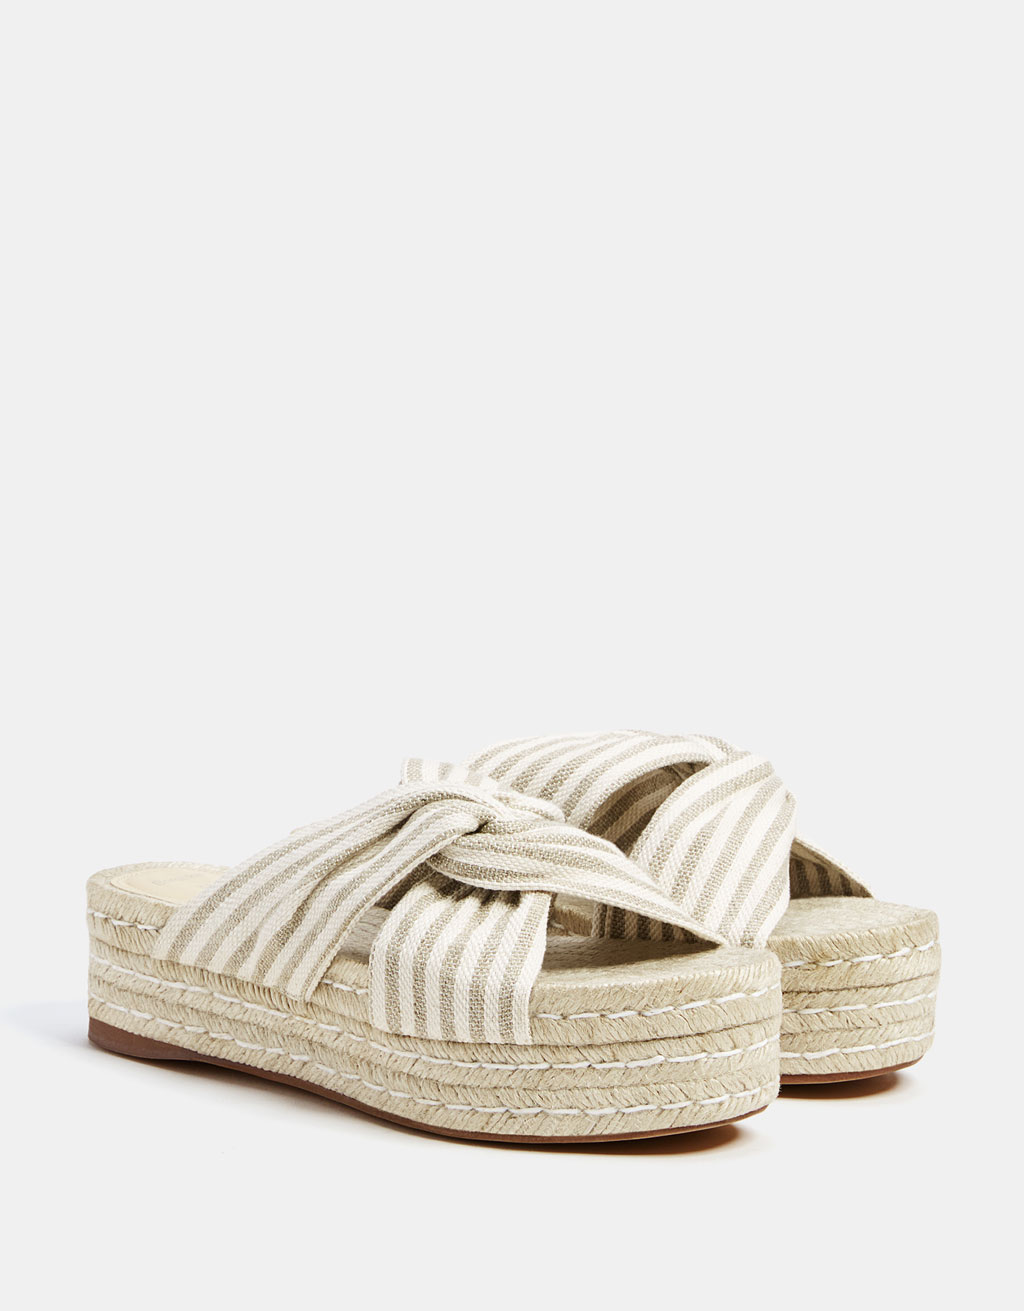 Striped sandals with jute platforms